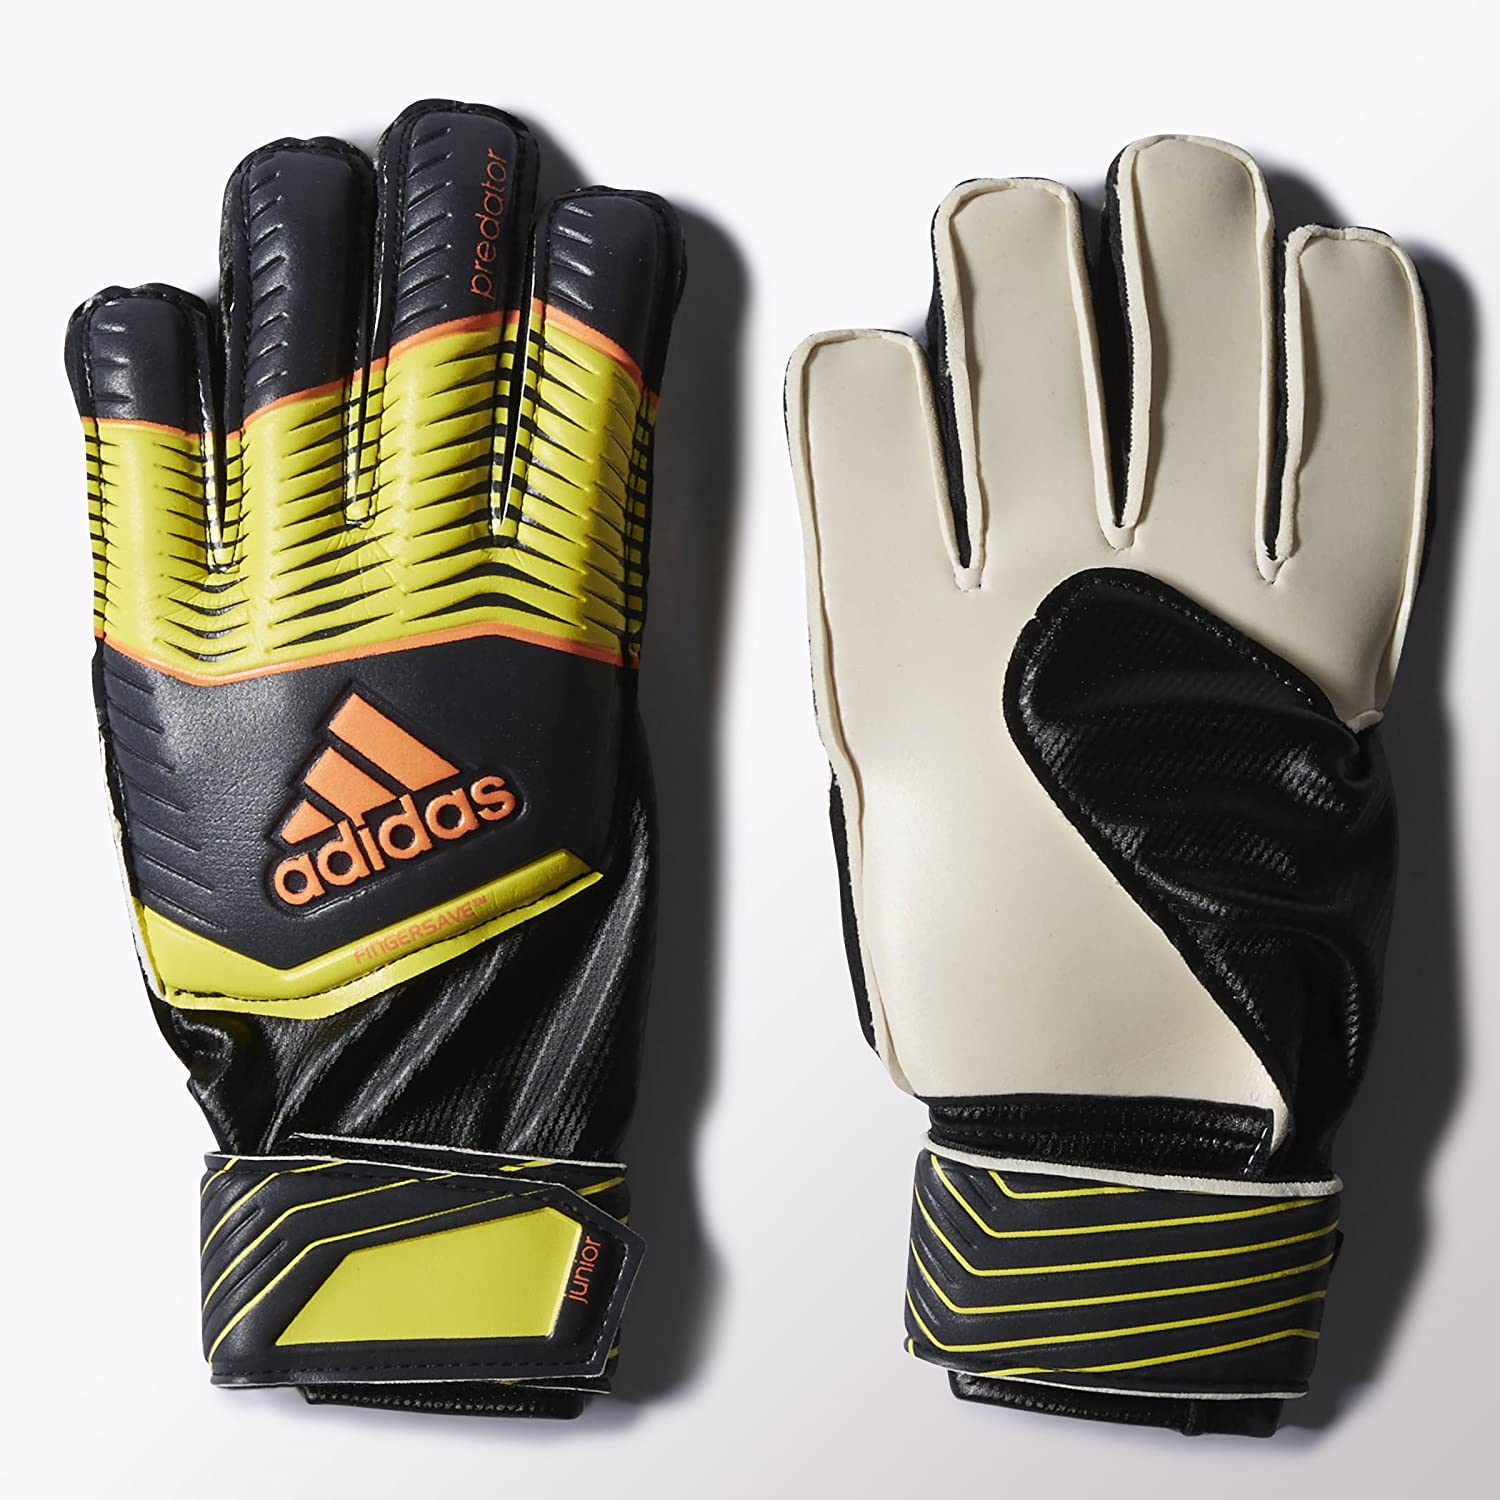 Adidas Gants De Gardien De But Junior Prédateur ezuuL4v